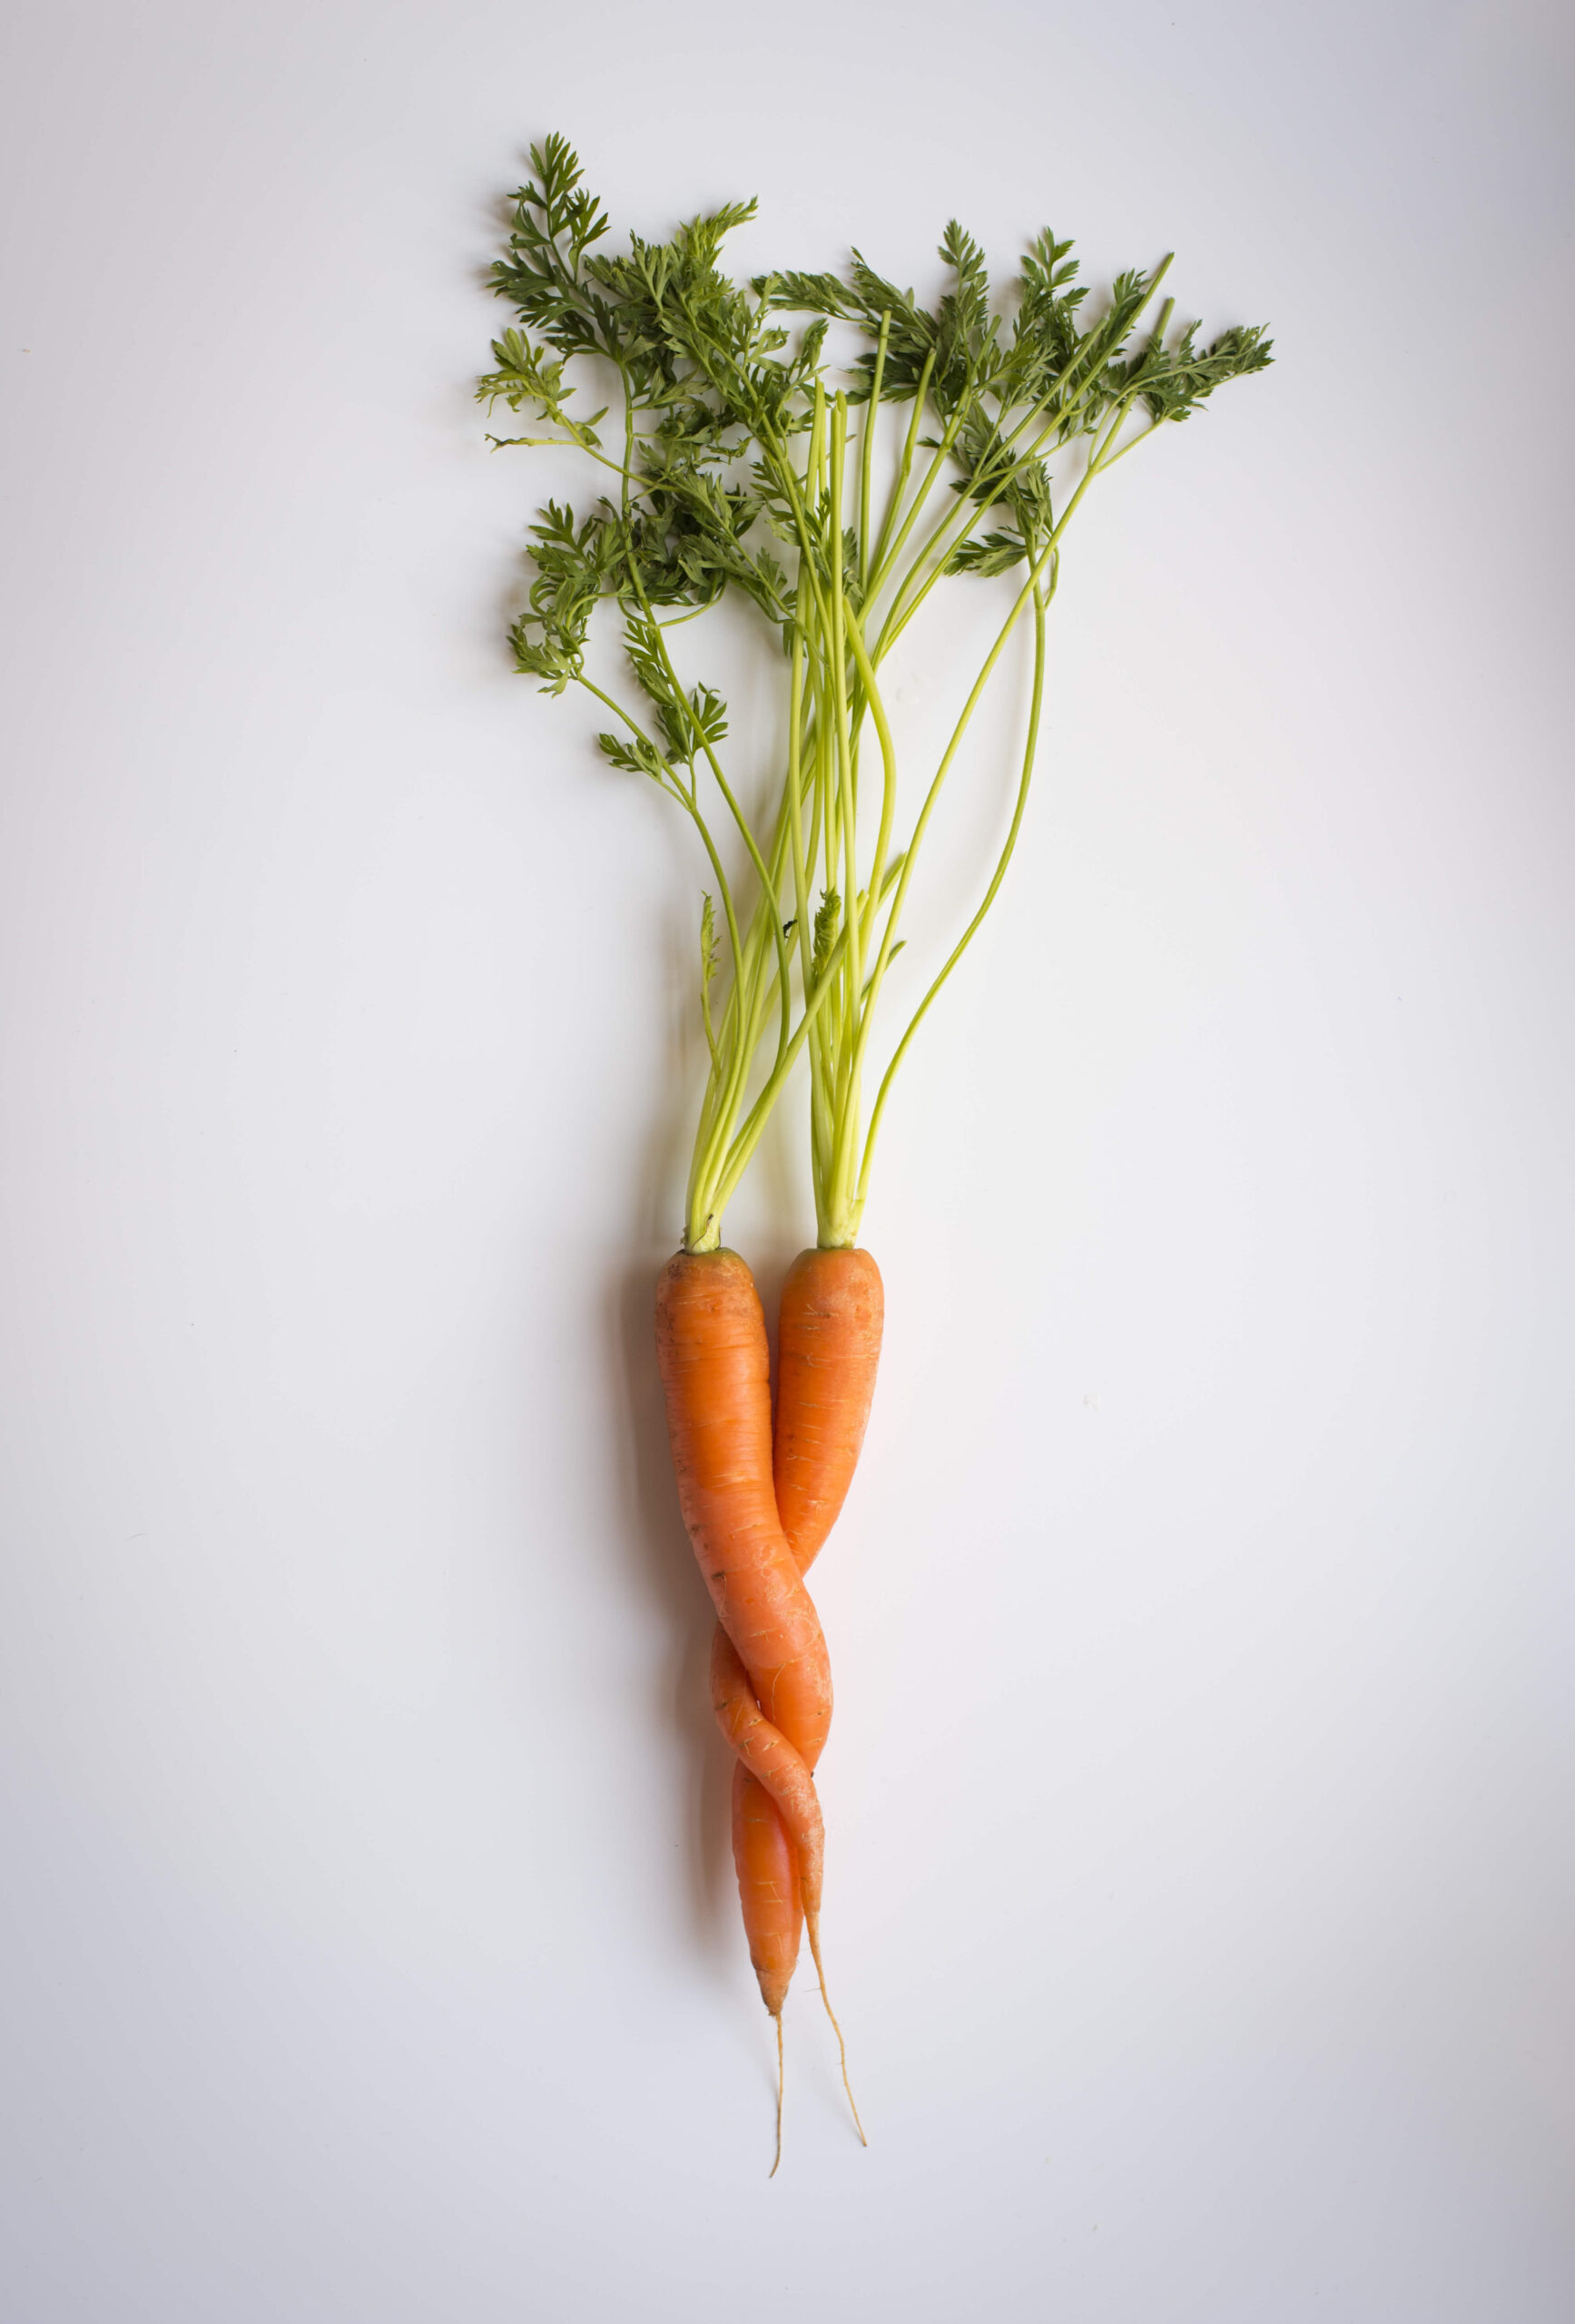 two carrots twisted together like community